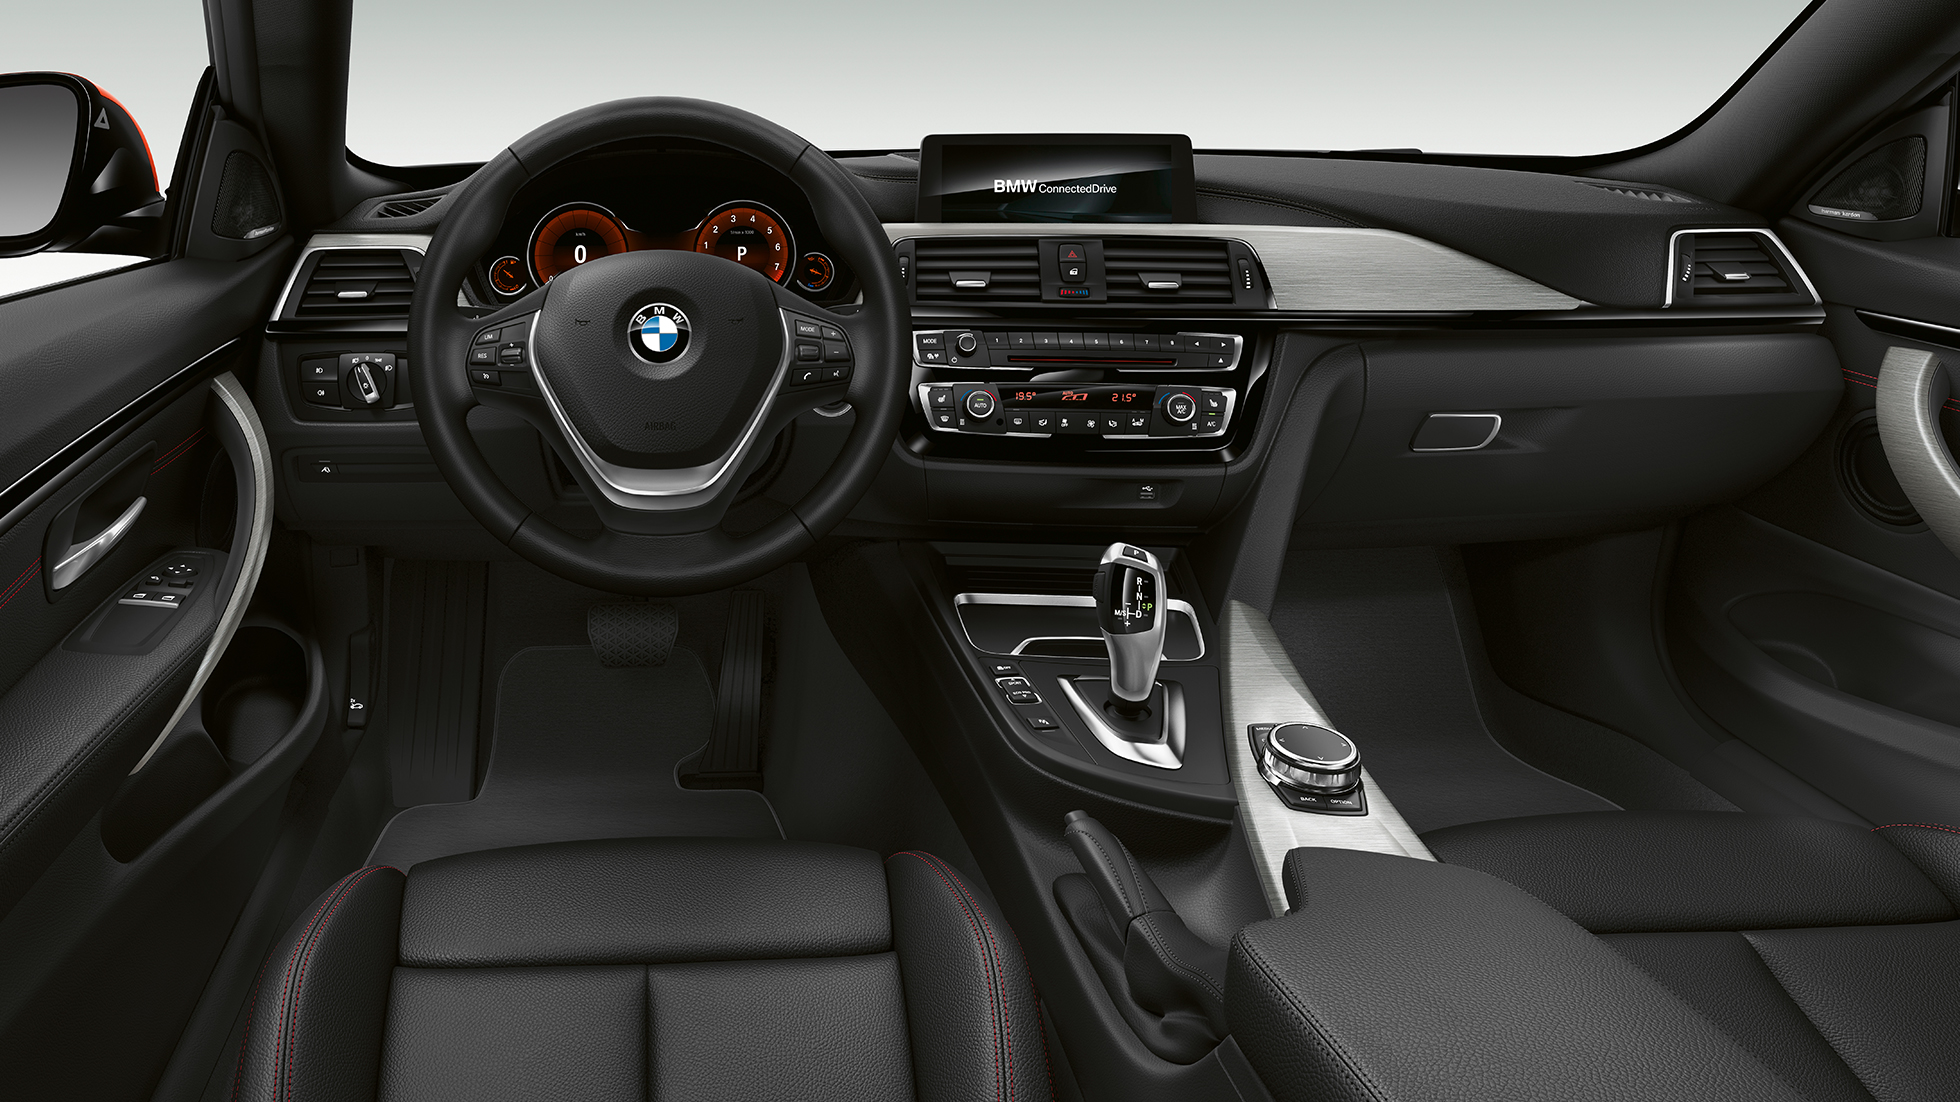 BMW 4-serie Coupé, Model Sport Line, cockpit